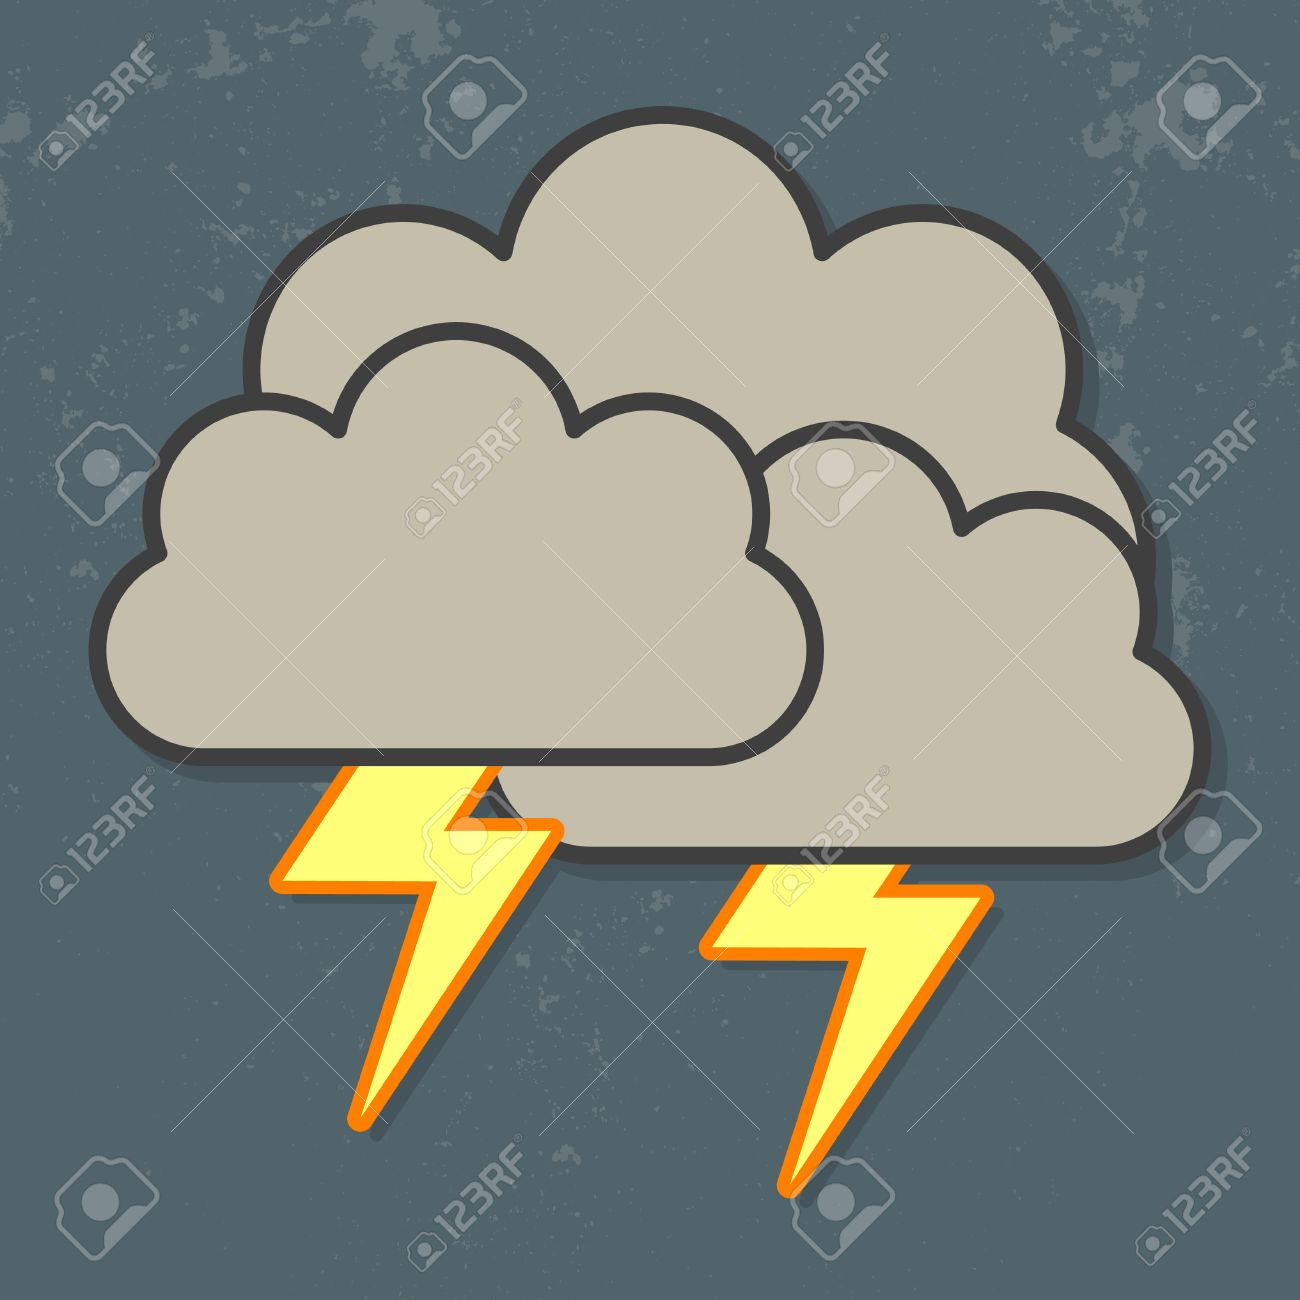 cloud with heavy fall rain and lightning in the dark sky cloud and lightning icon - 23207395